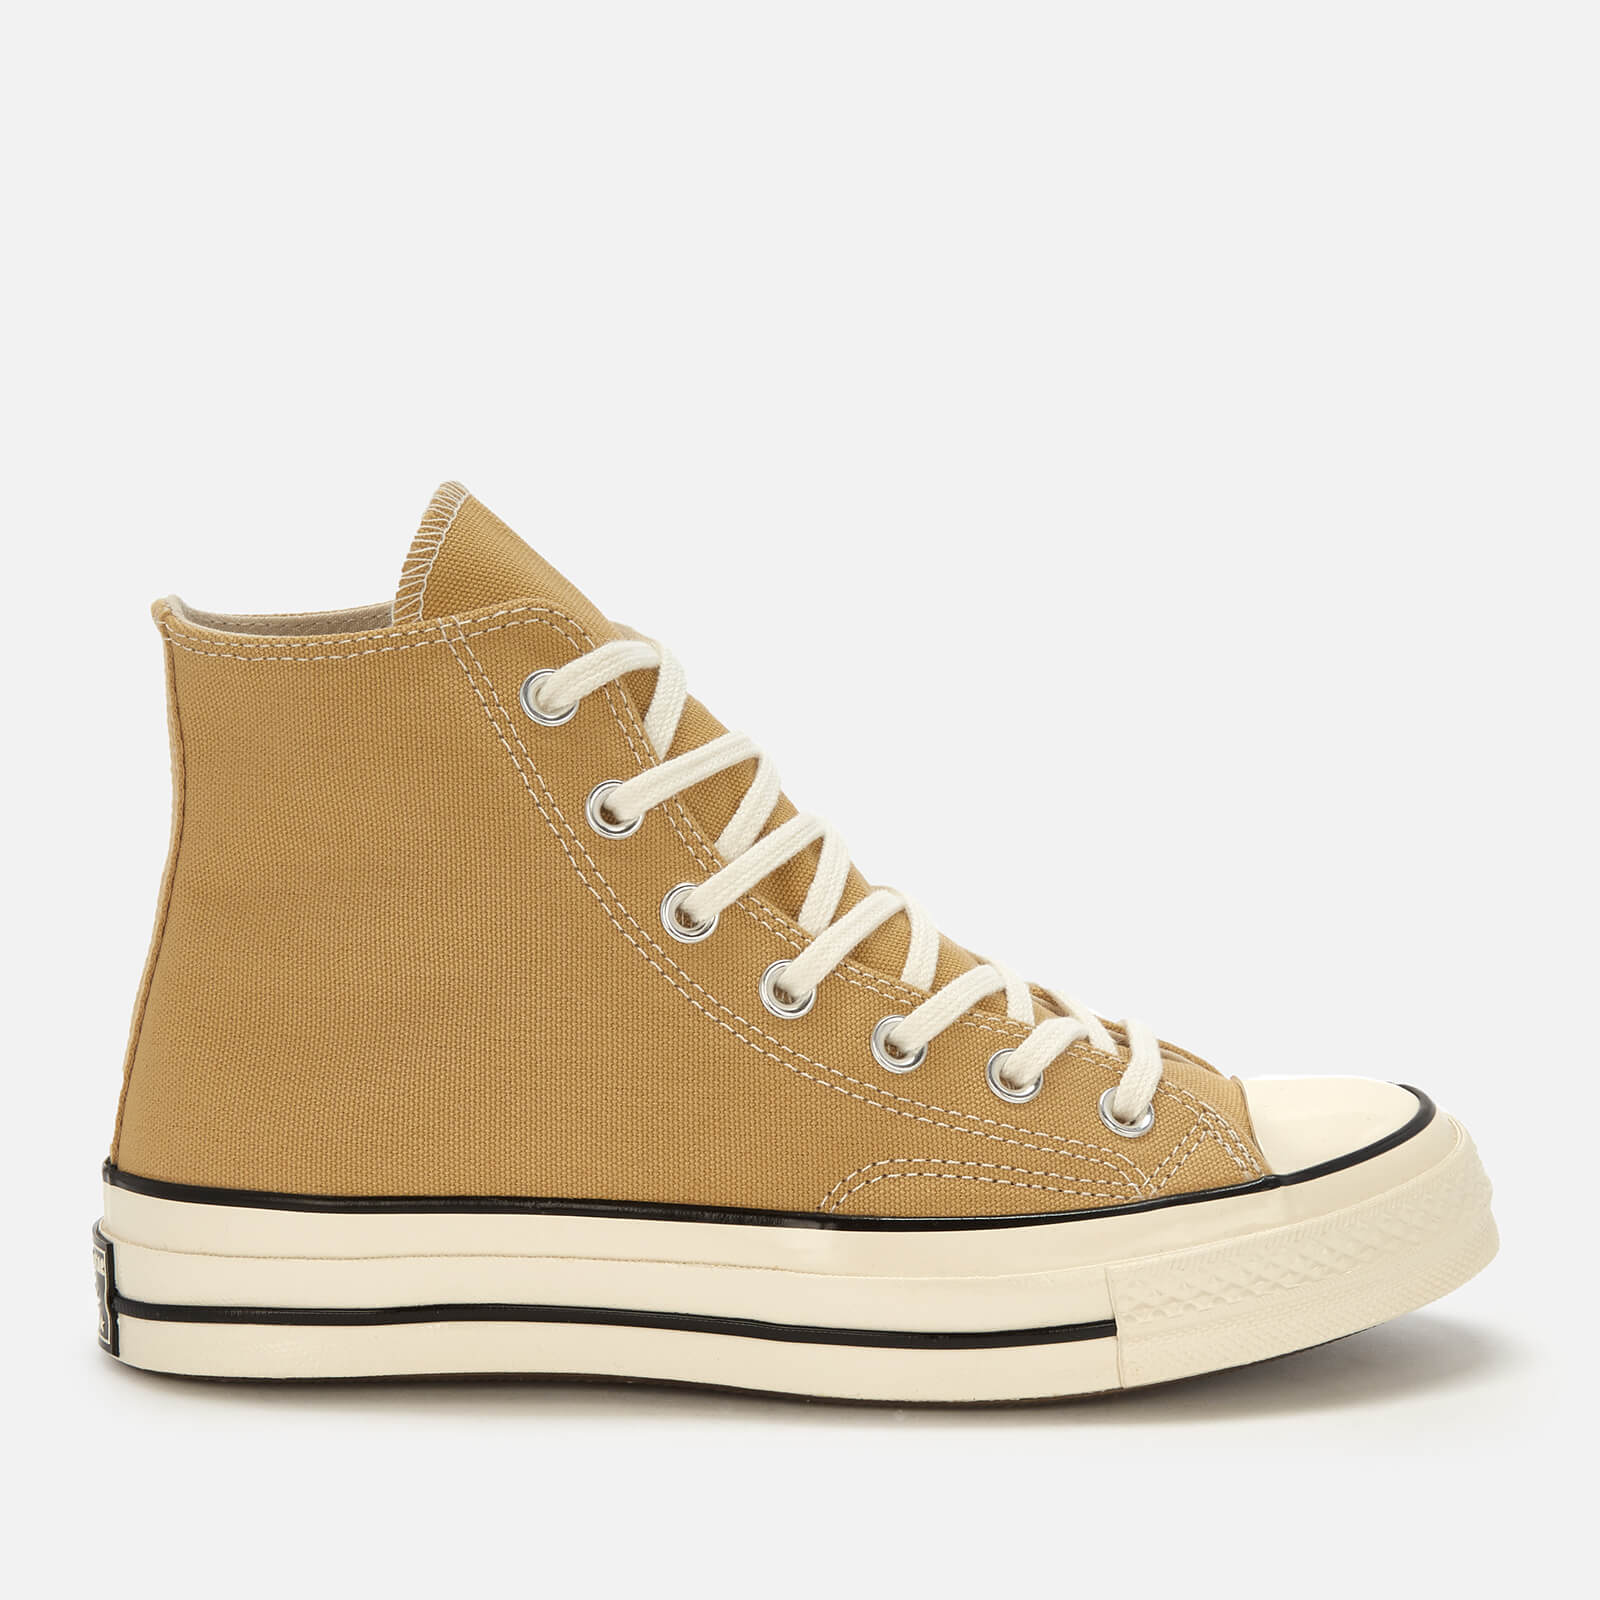 Converse CHUCK TAYLOR ALL STAR 70 High top trainers gold